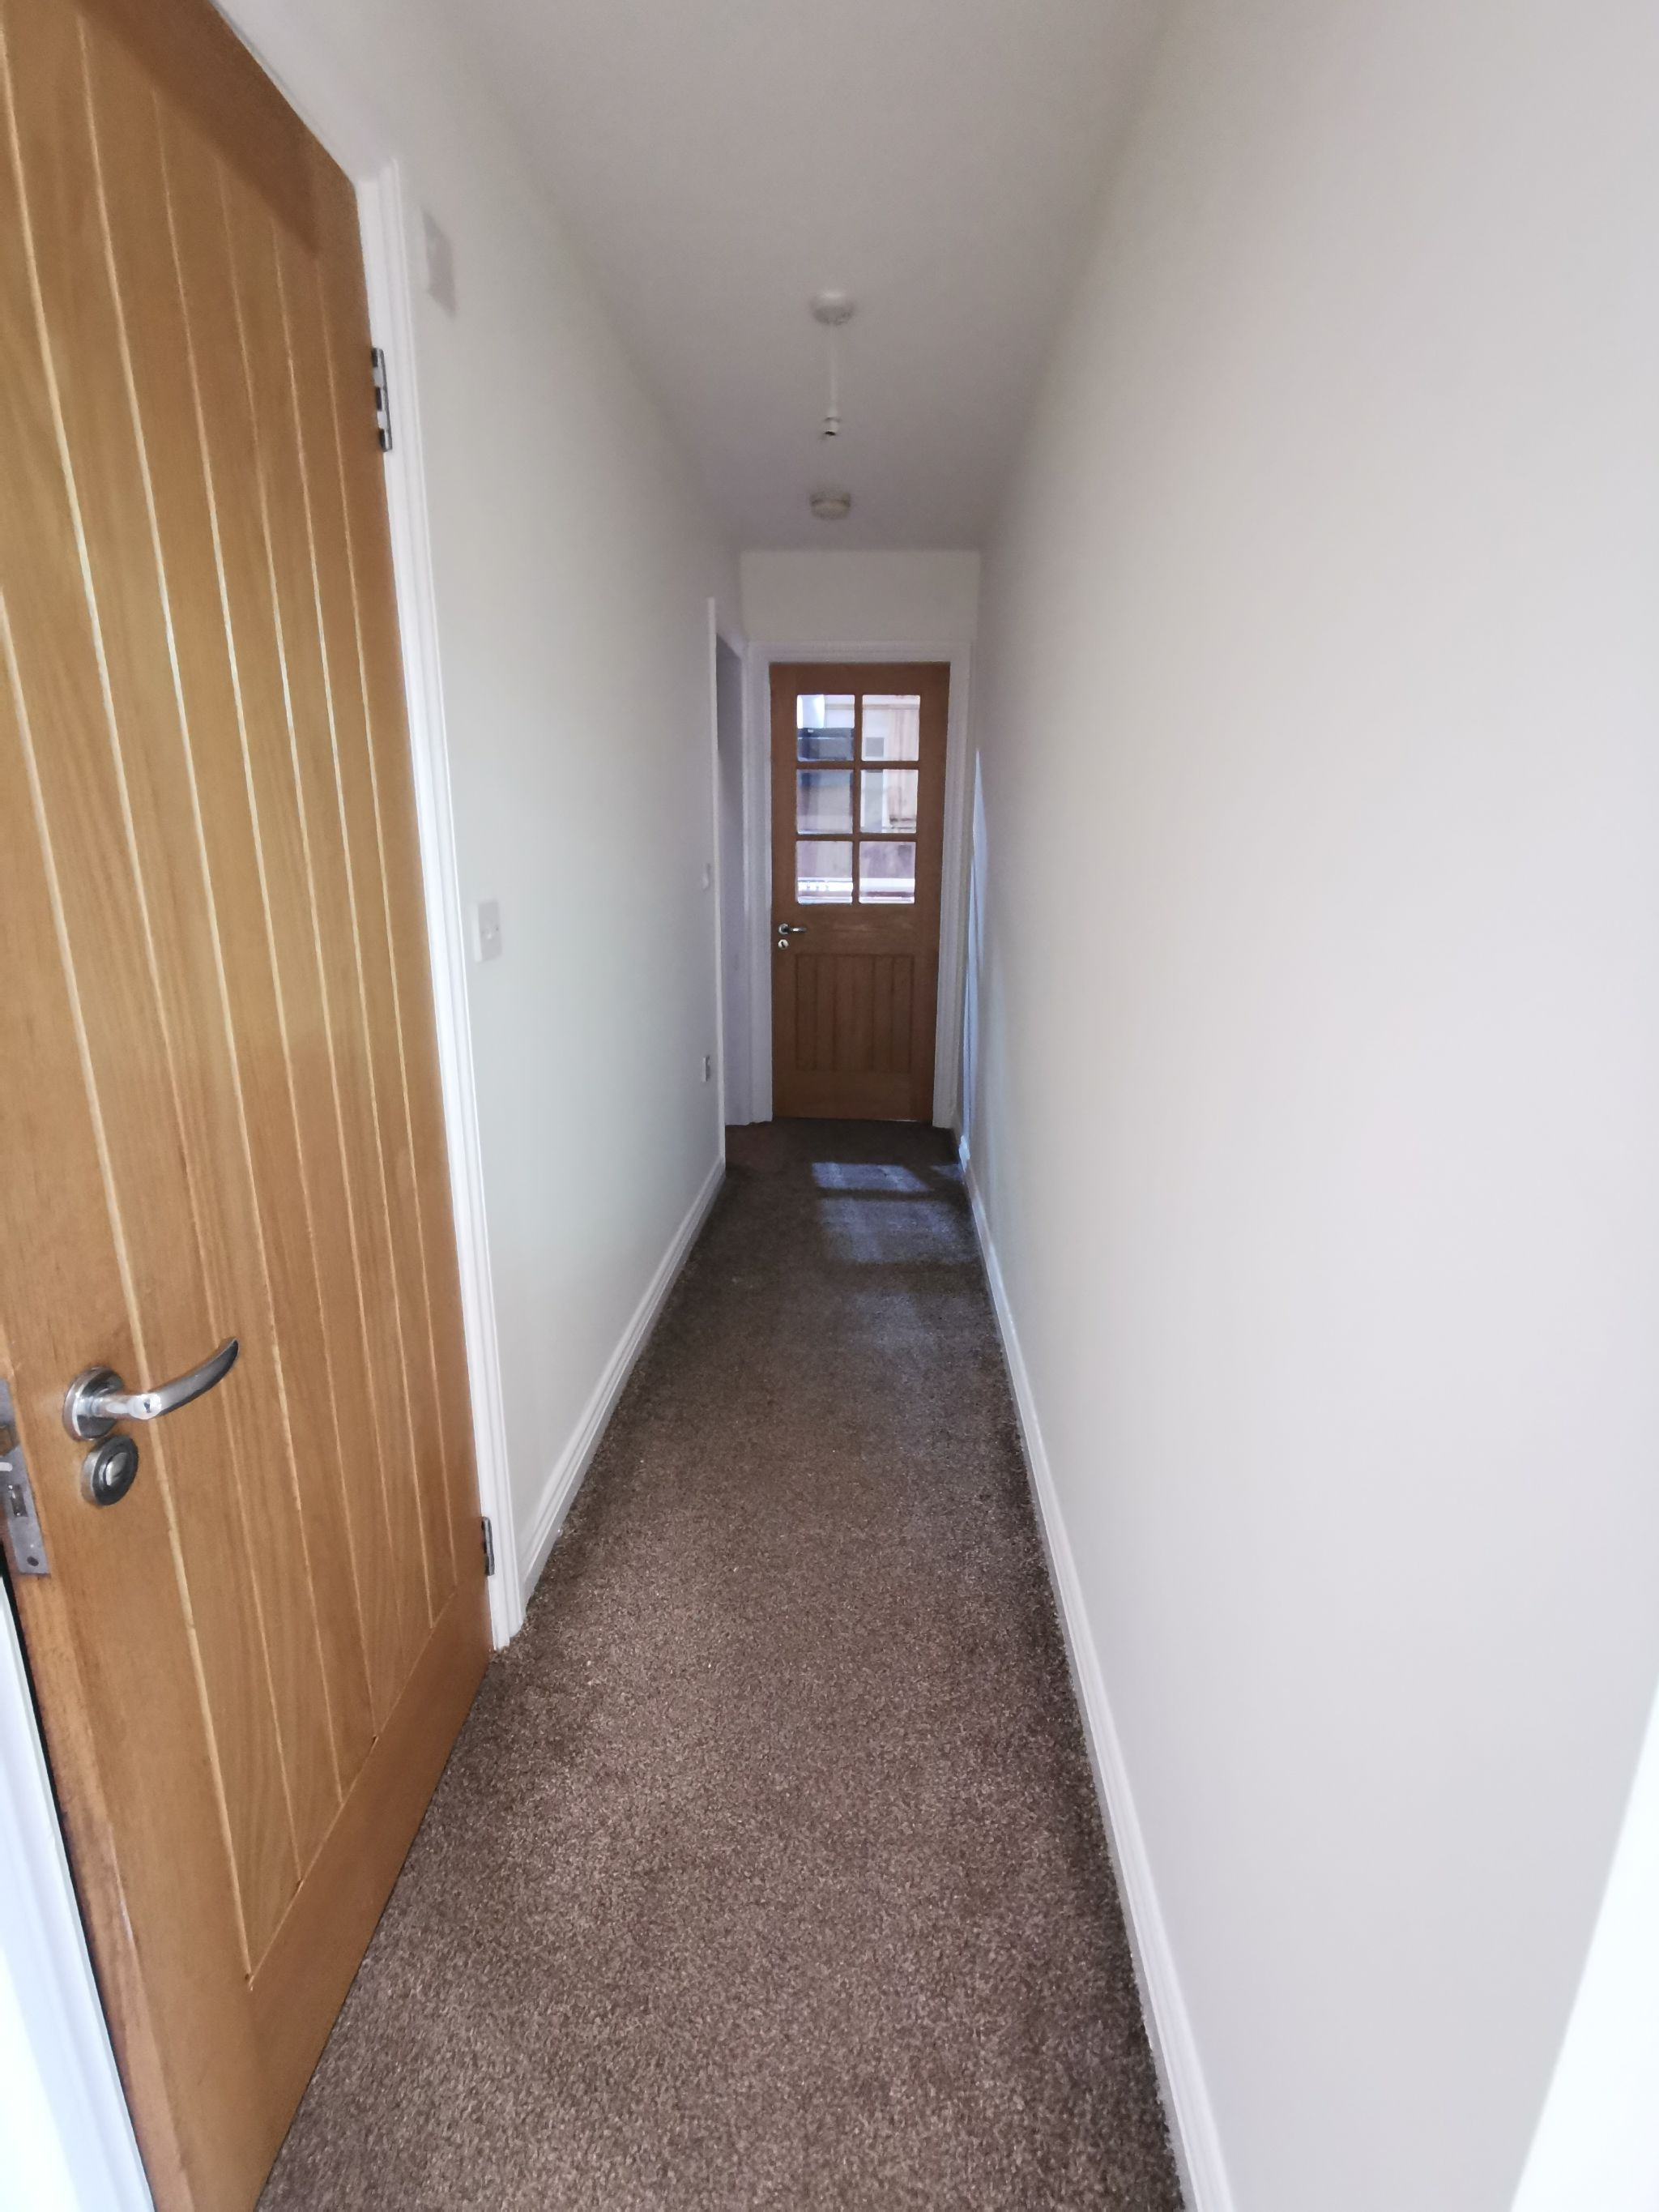 6 bedroom detached bungalow For Sale in Bradford - Photograph 12.